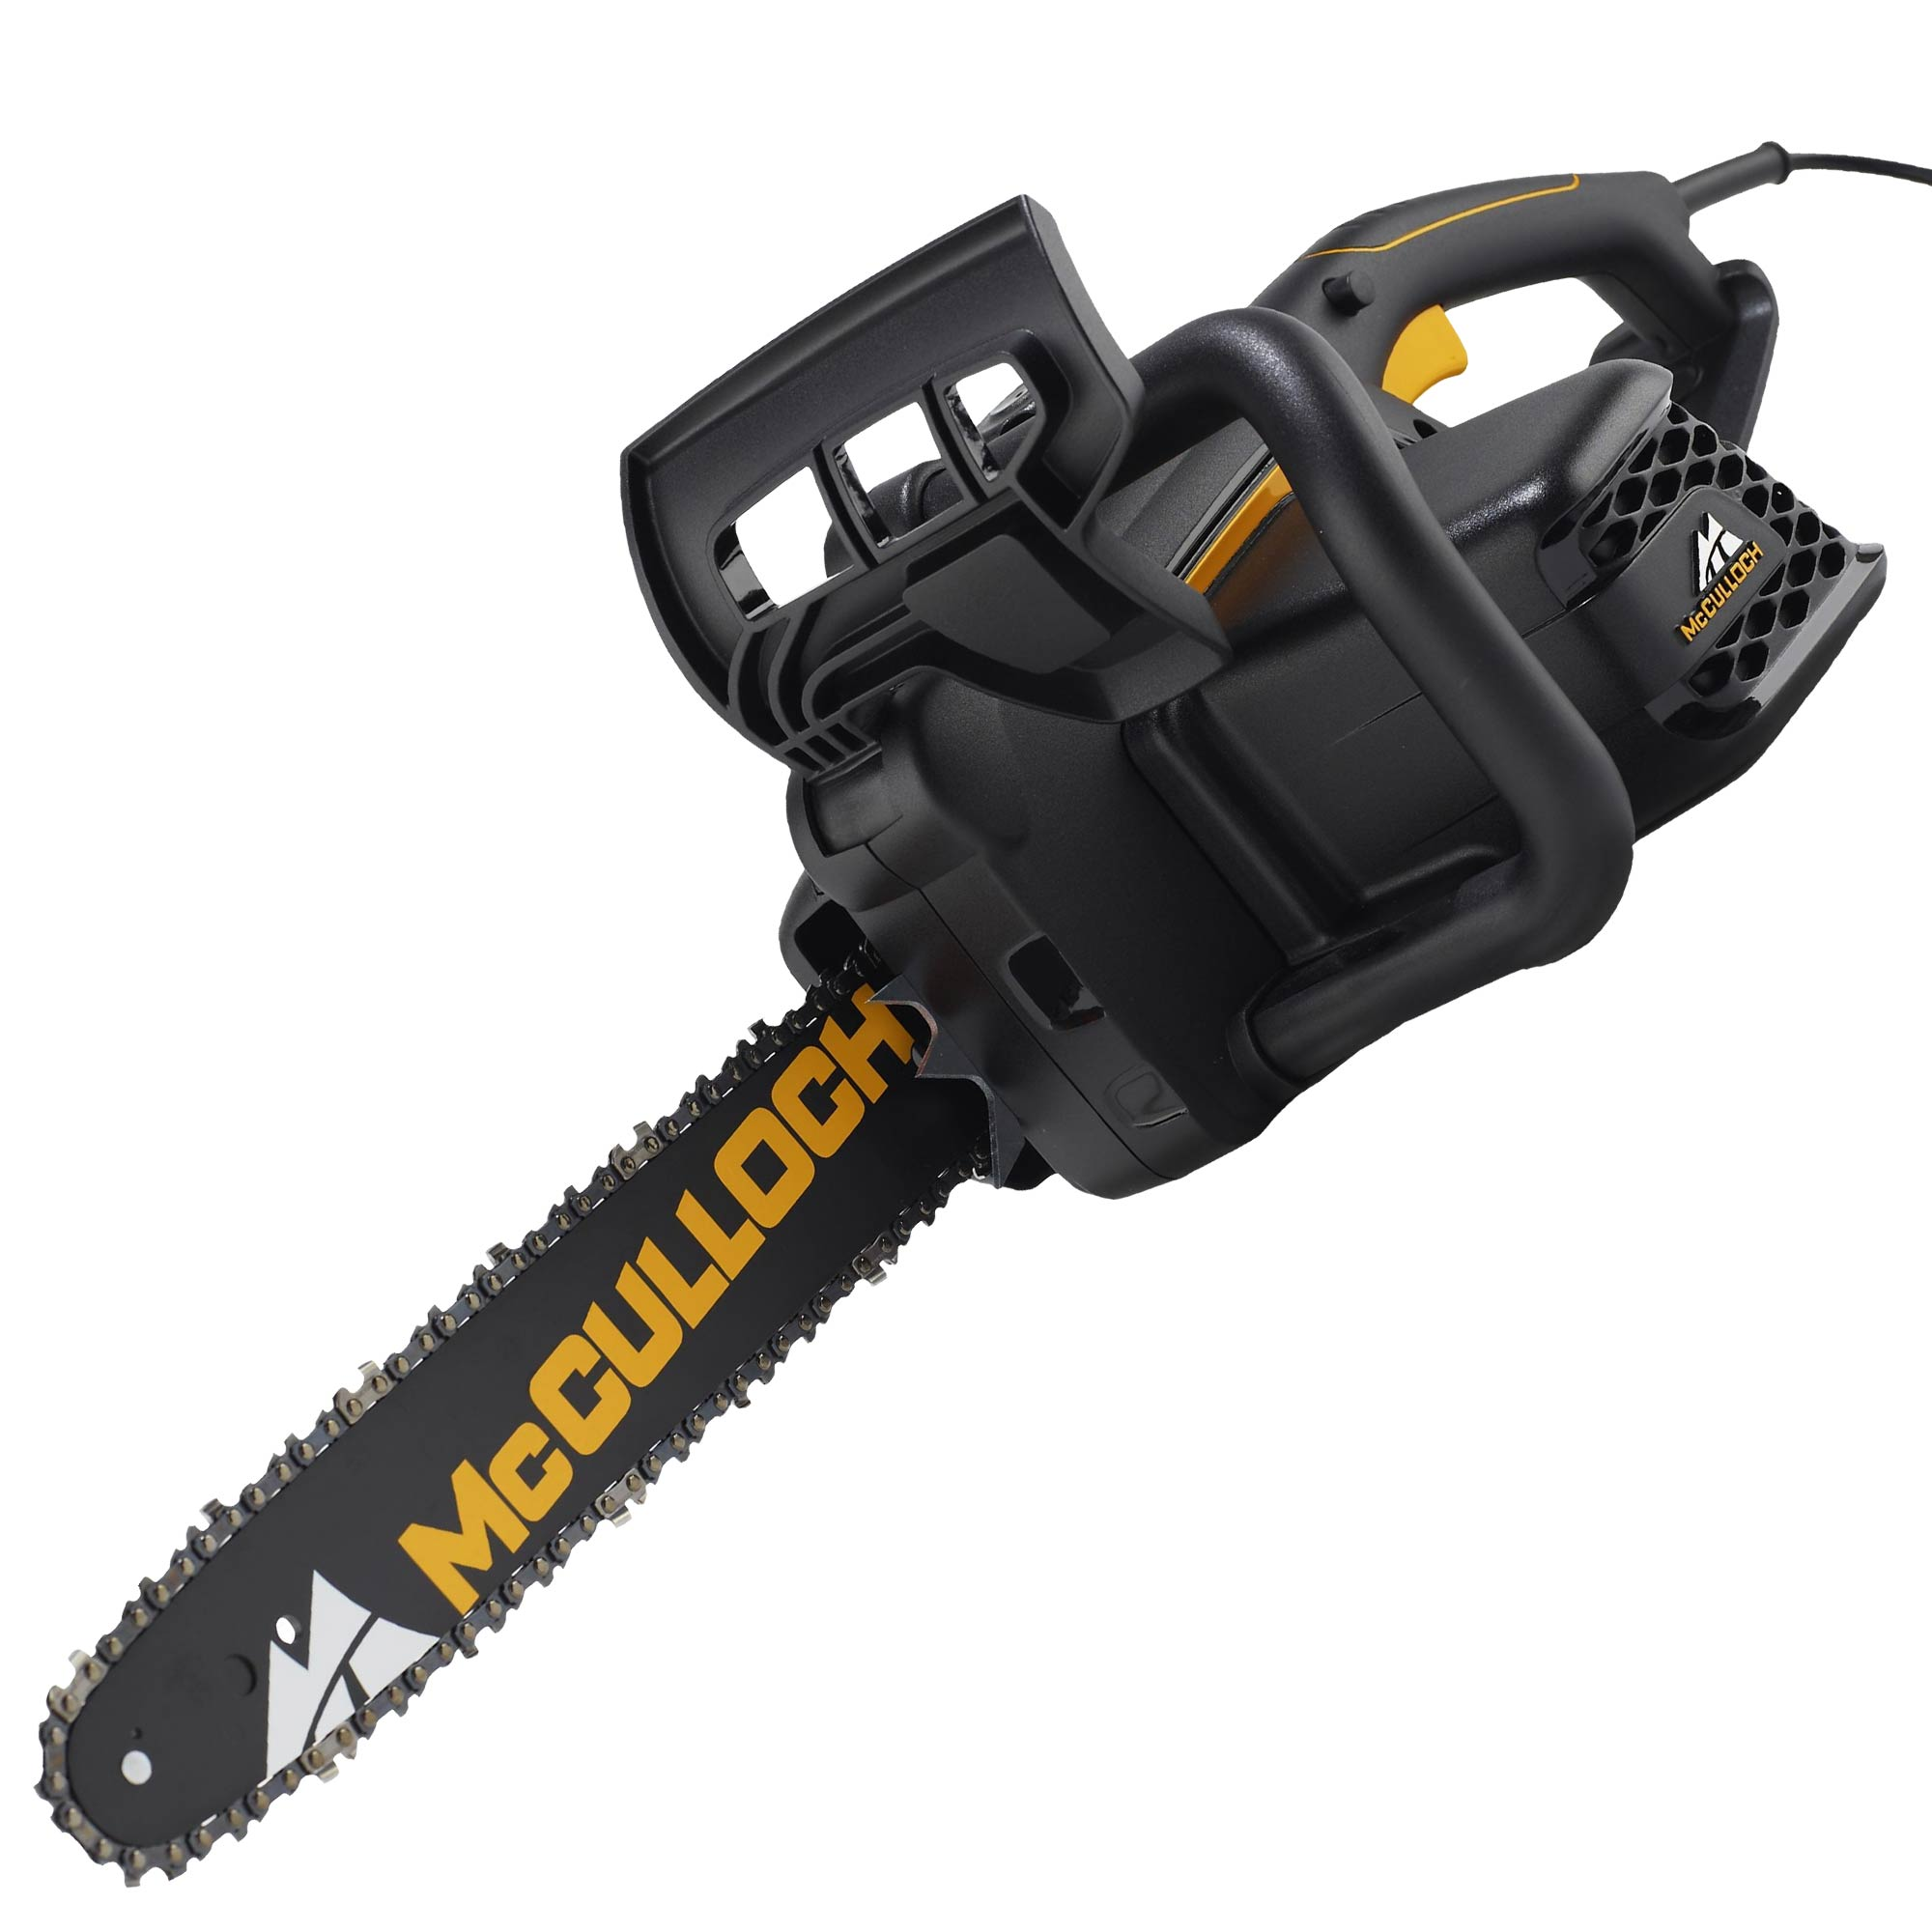 mcculloch cse2040s mcculloch electric 40cm chainsaw. Black Bedroom Furniture Sets. Home Design Ideas